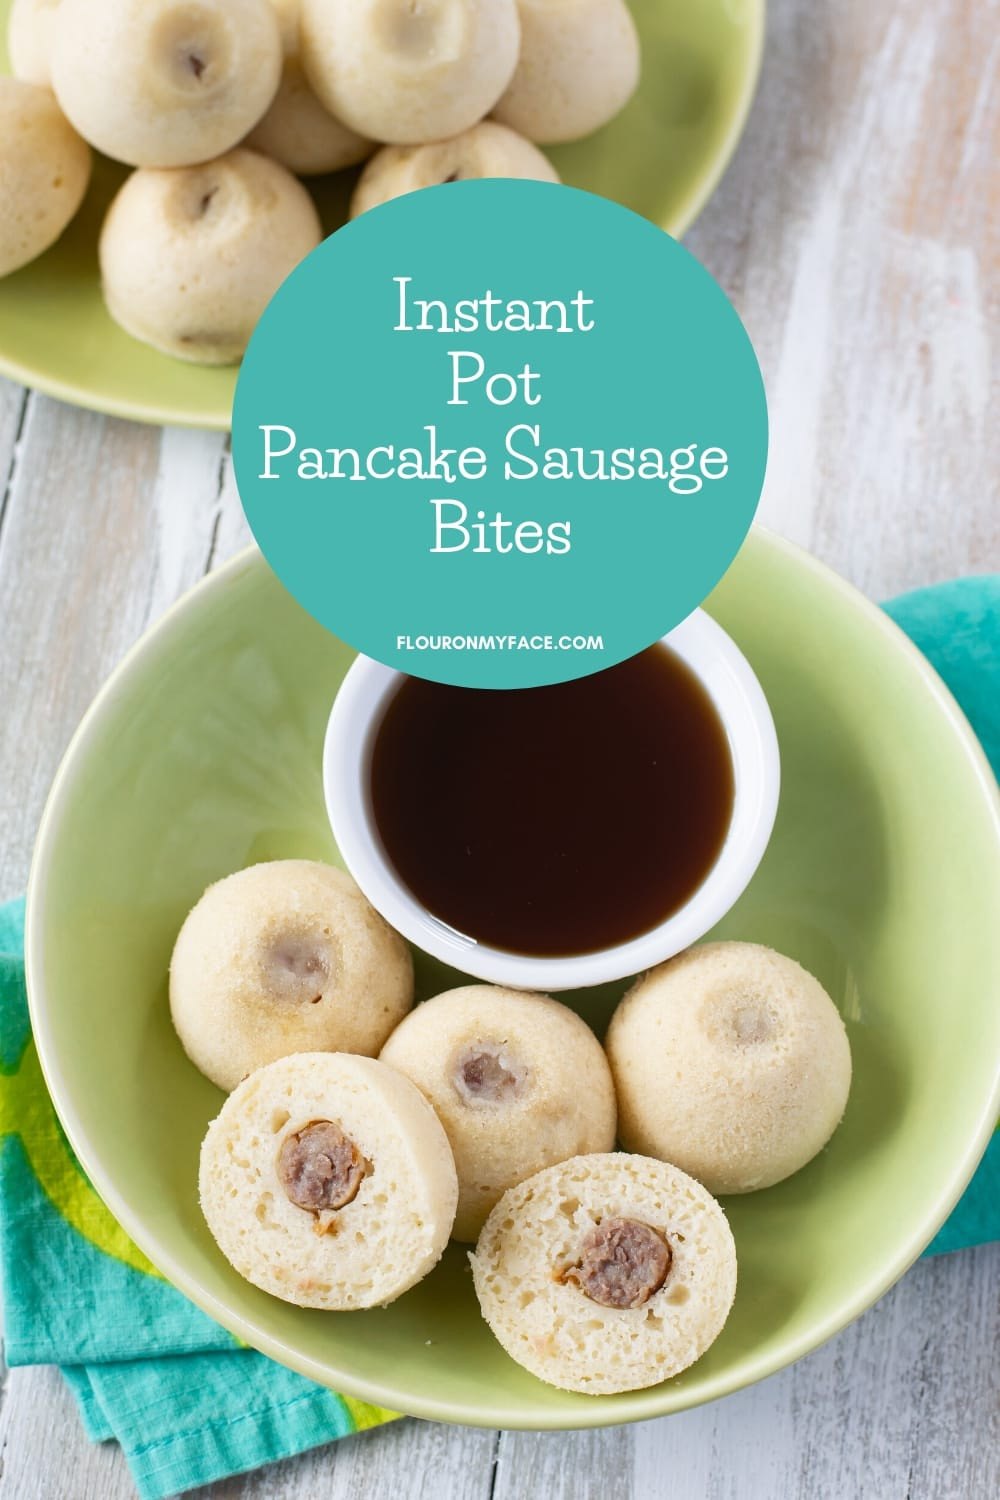 Instant Pot Pancake Sausage Bites on a plate with a bowl of pancake syrup